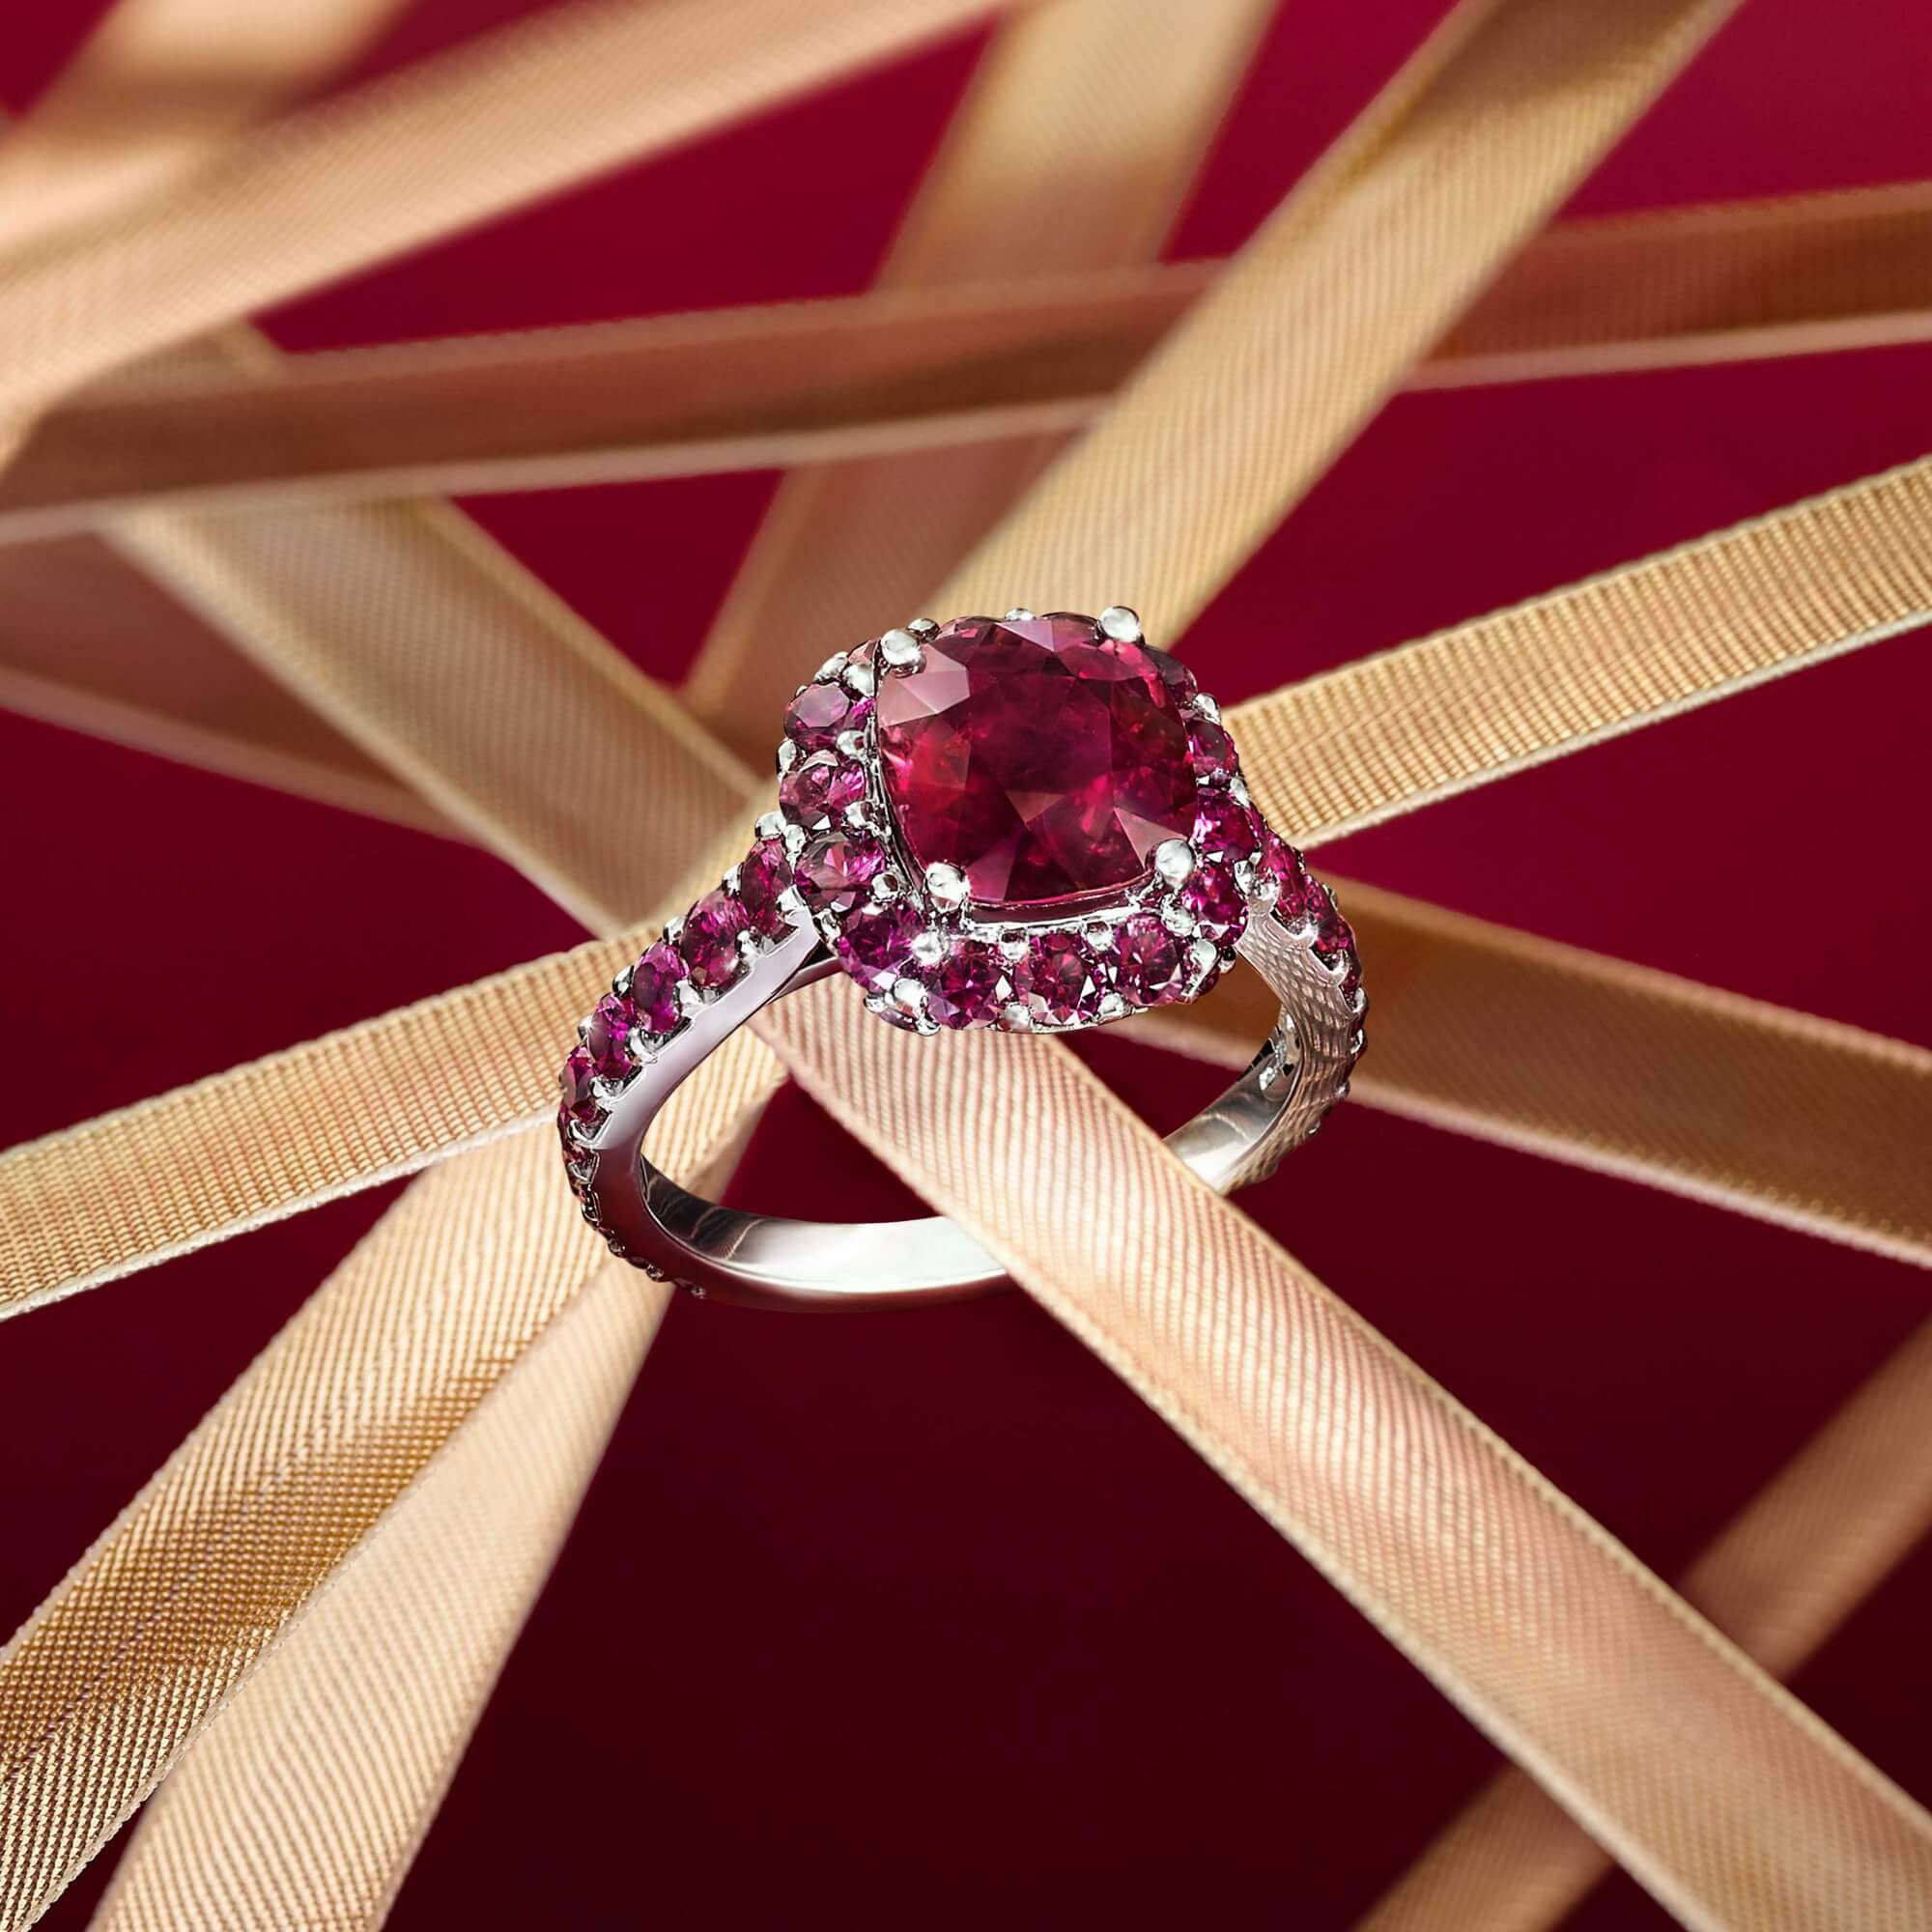 A Graff Ruby ring with gold ribbons on a red background